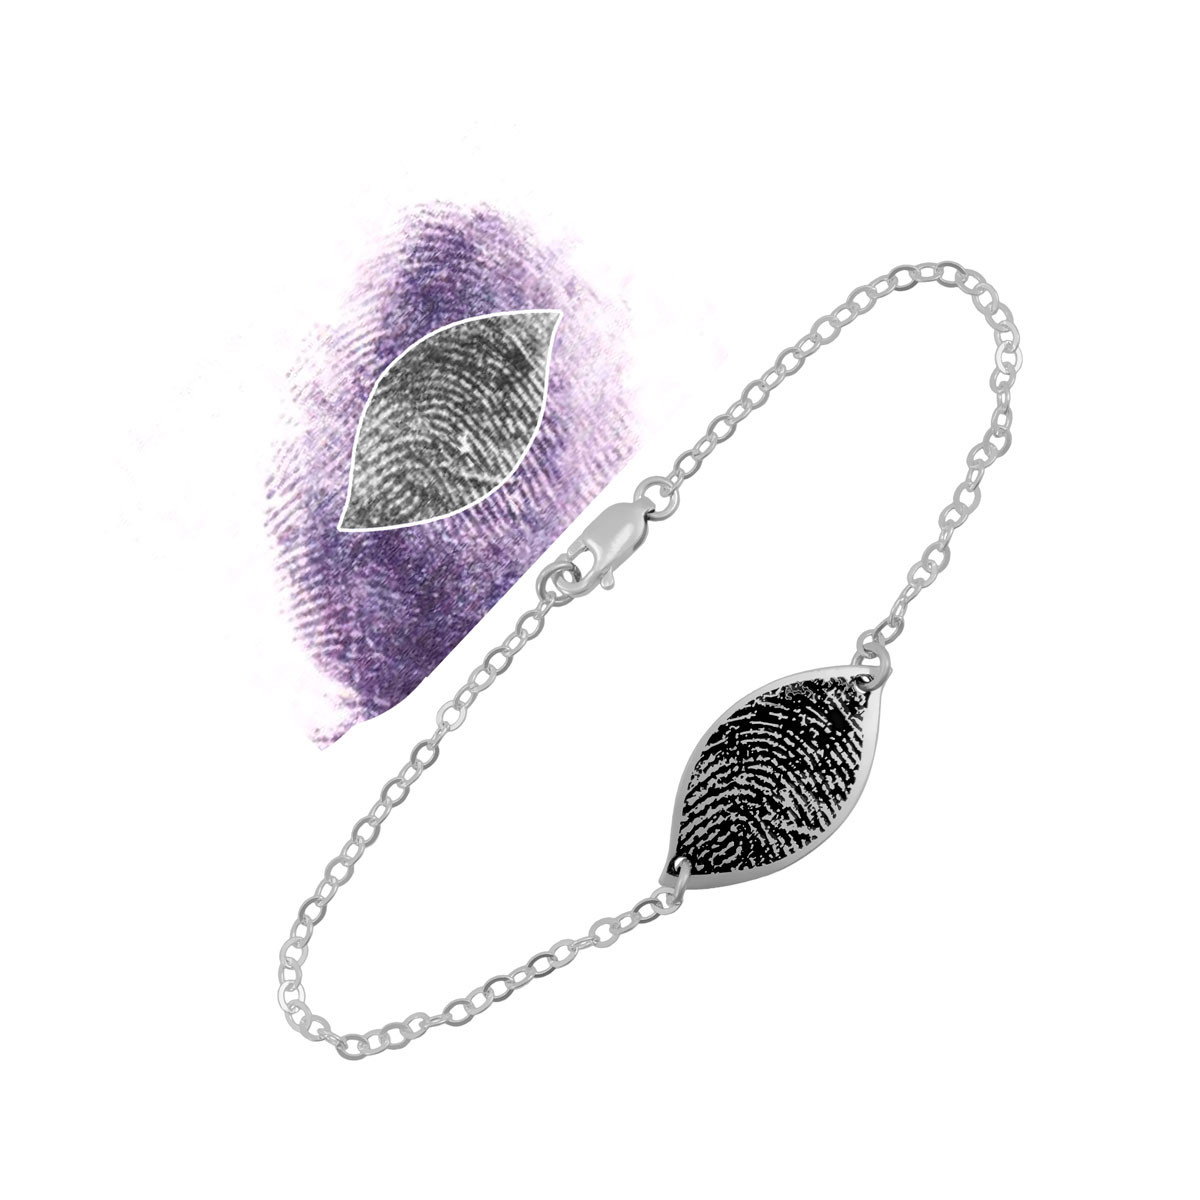 Custom fingerprint petal bracelet in silver, with the fingerprint used to create it